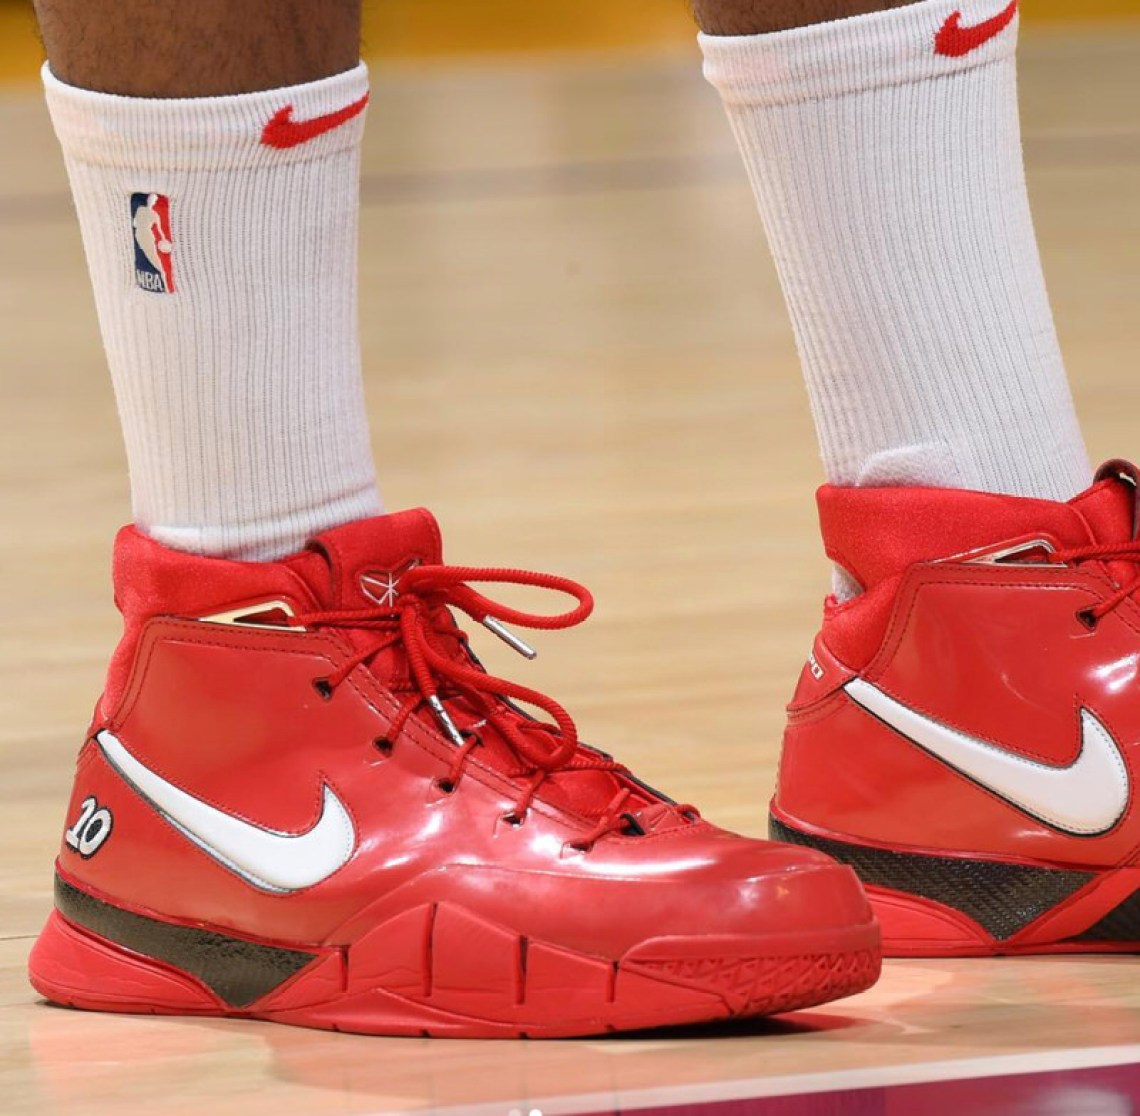 53e0684c3 ... PJ Tucker in the Nike Kobe 1 Protro DeMar DeRozan PE (photo via BR Kicks)  ...